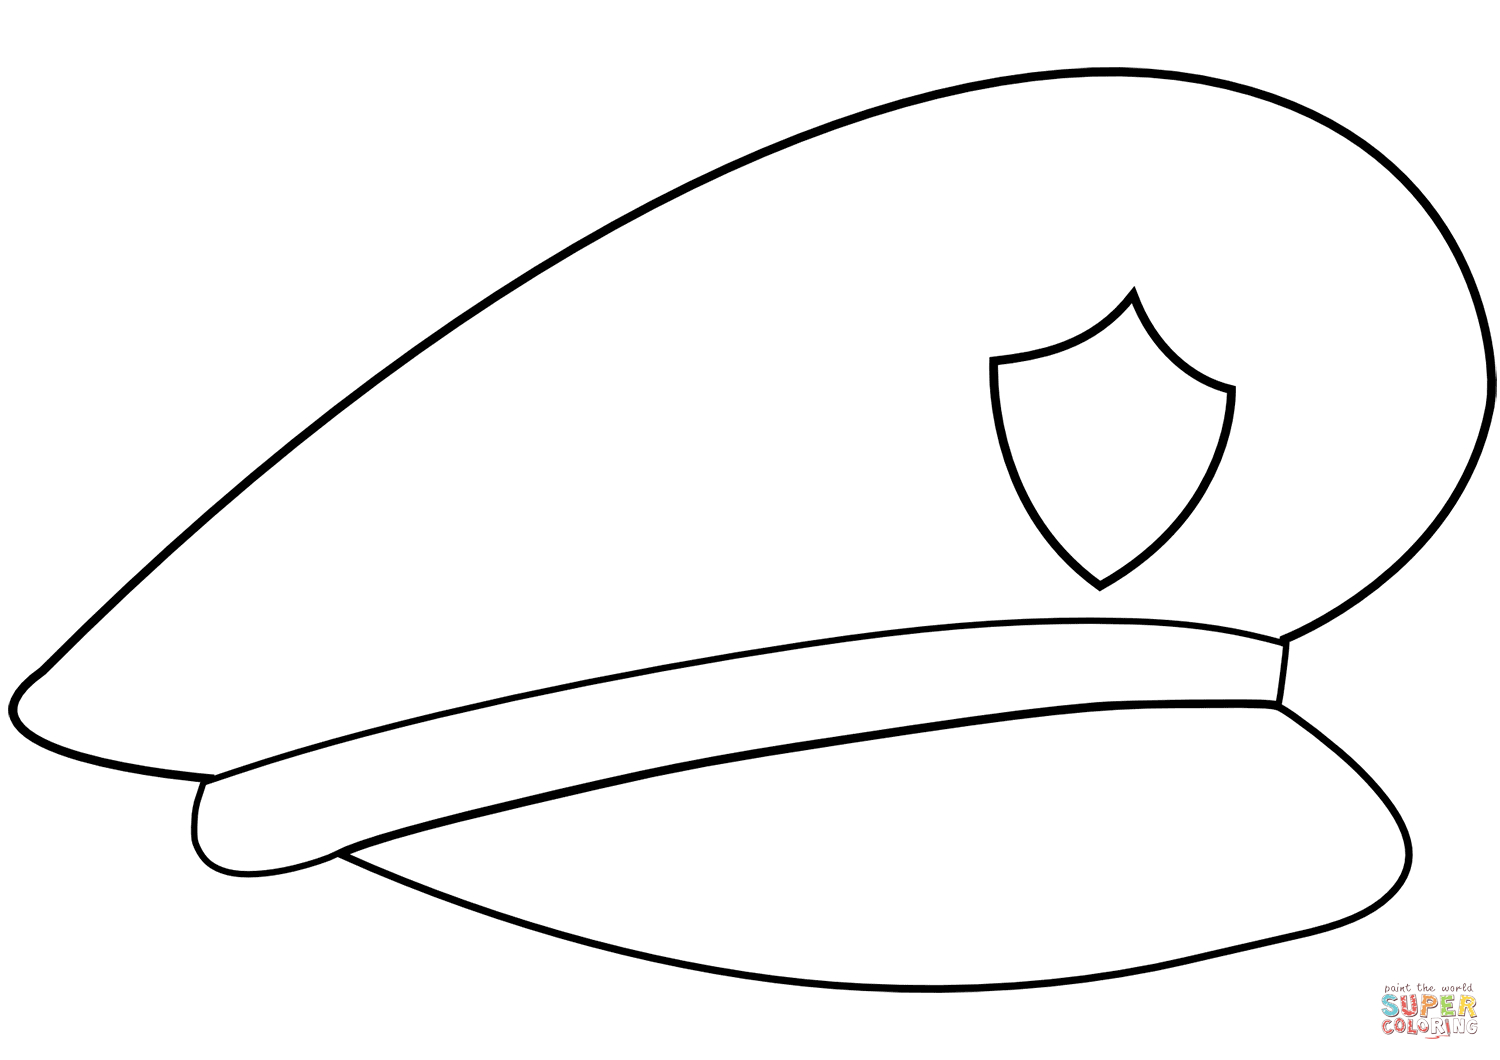 Police Hat Coloring Page | Free Printable Coloring Pages - Free Printable Police Hat